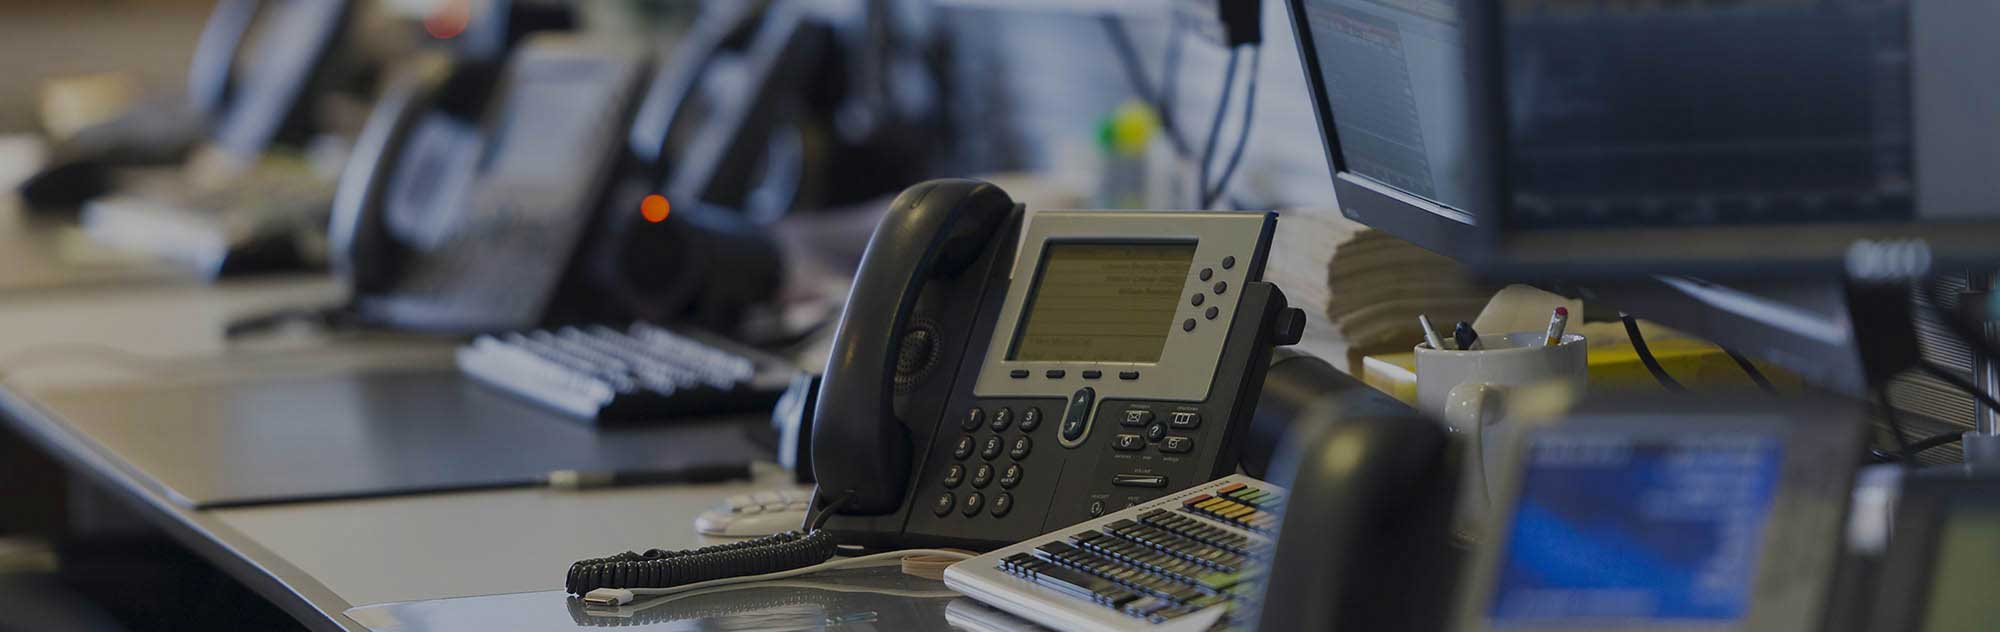 AIG Callcentre Phones